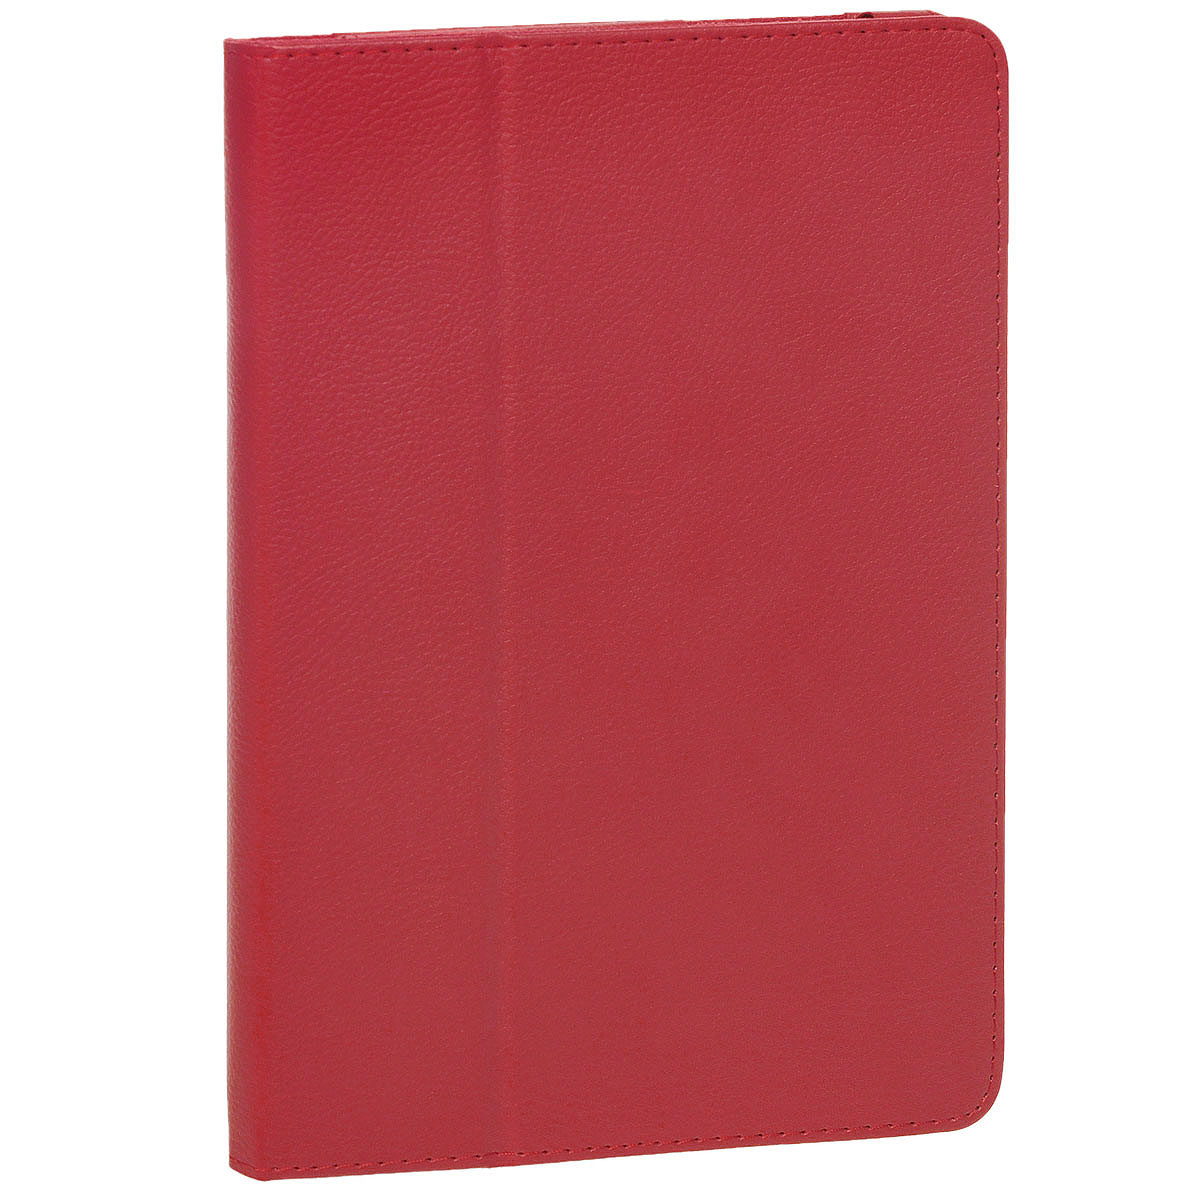 IT Baggage чехол для Asus Transformer Pad TF103/TF303, Red